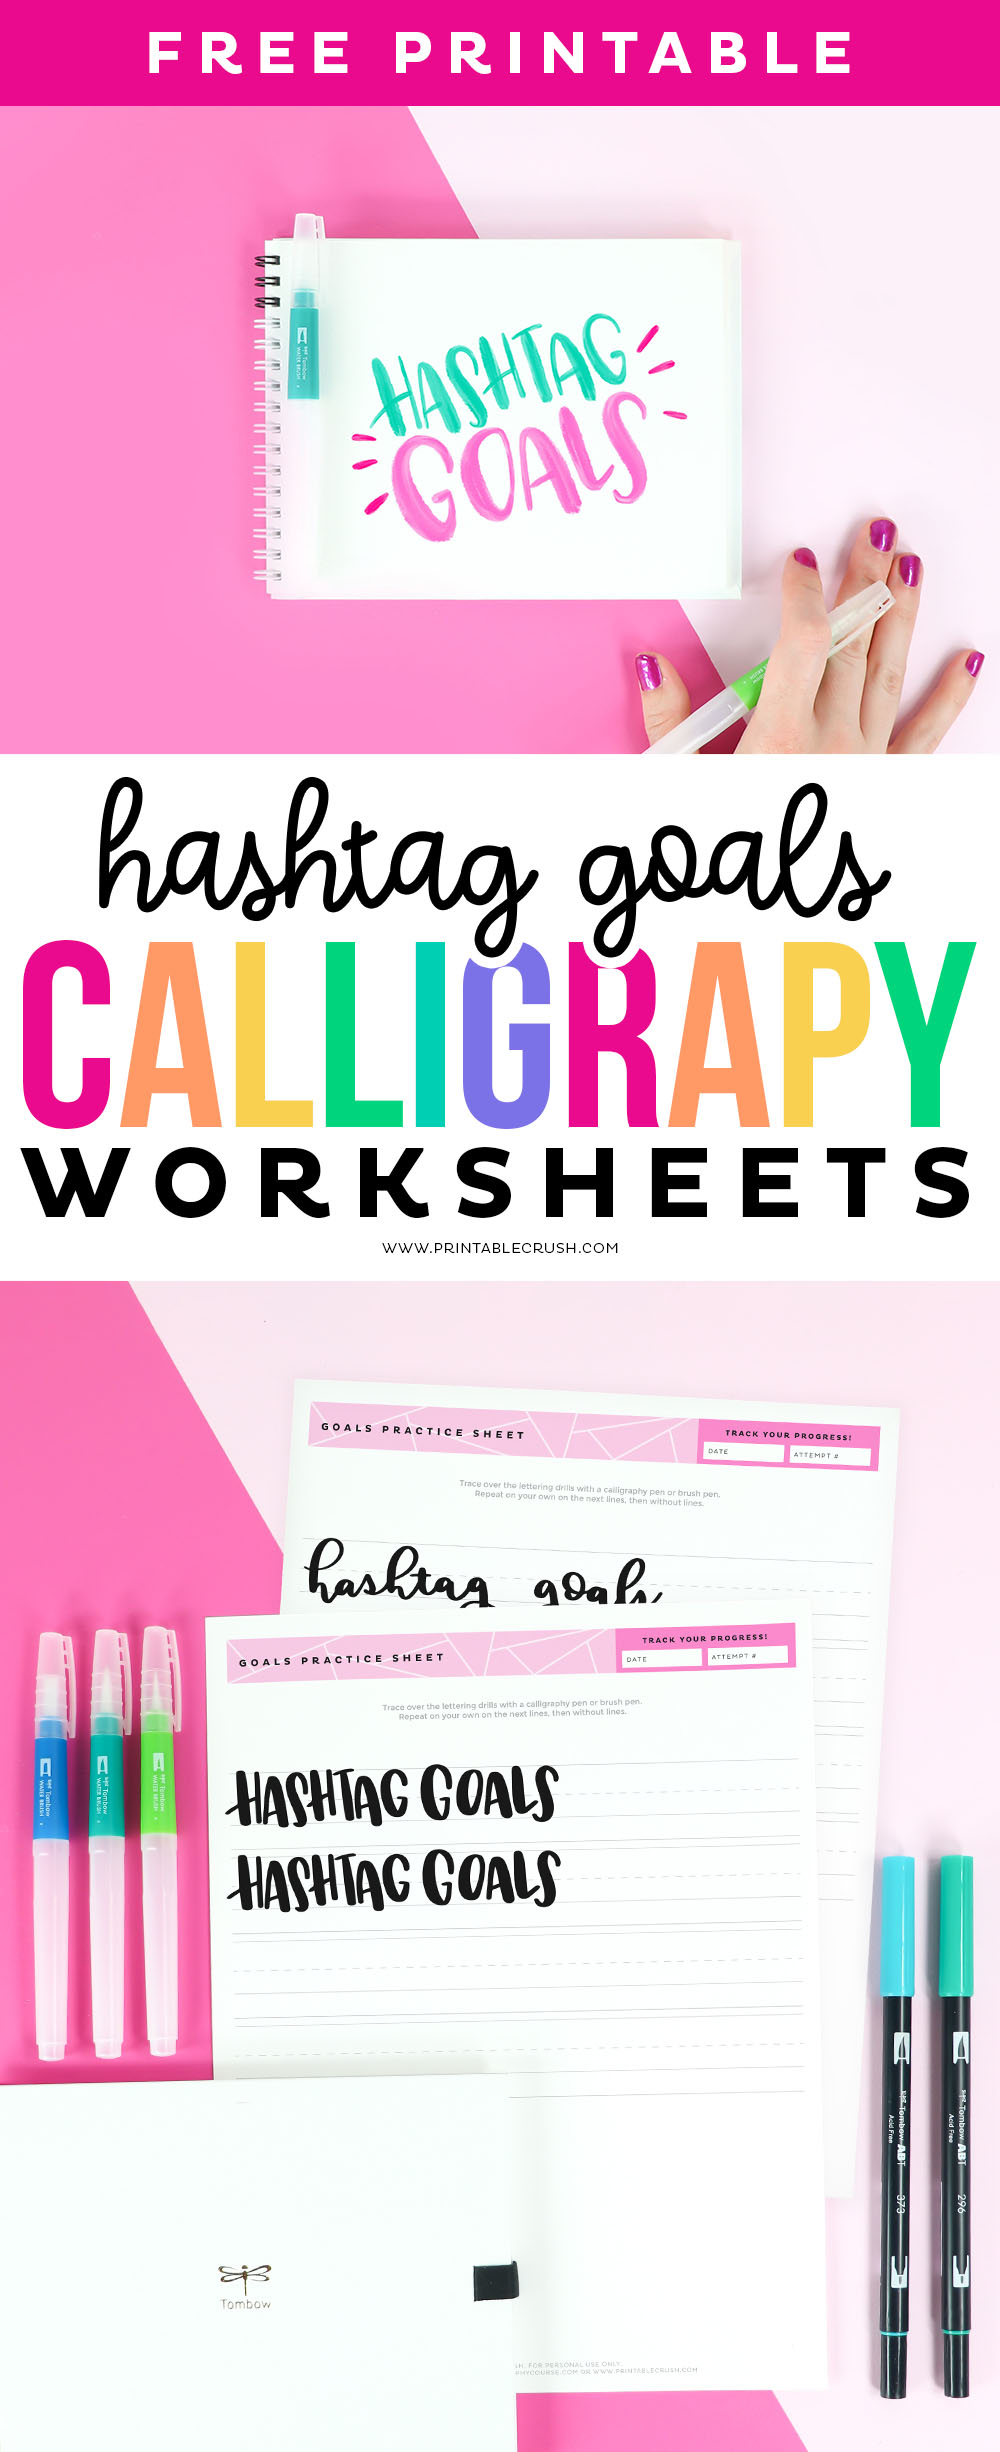 Goals Calligraphy Practice Sheets - Hashtag Goals Hand lettering - Lettering calligraphy sheets - Printable Crush